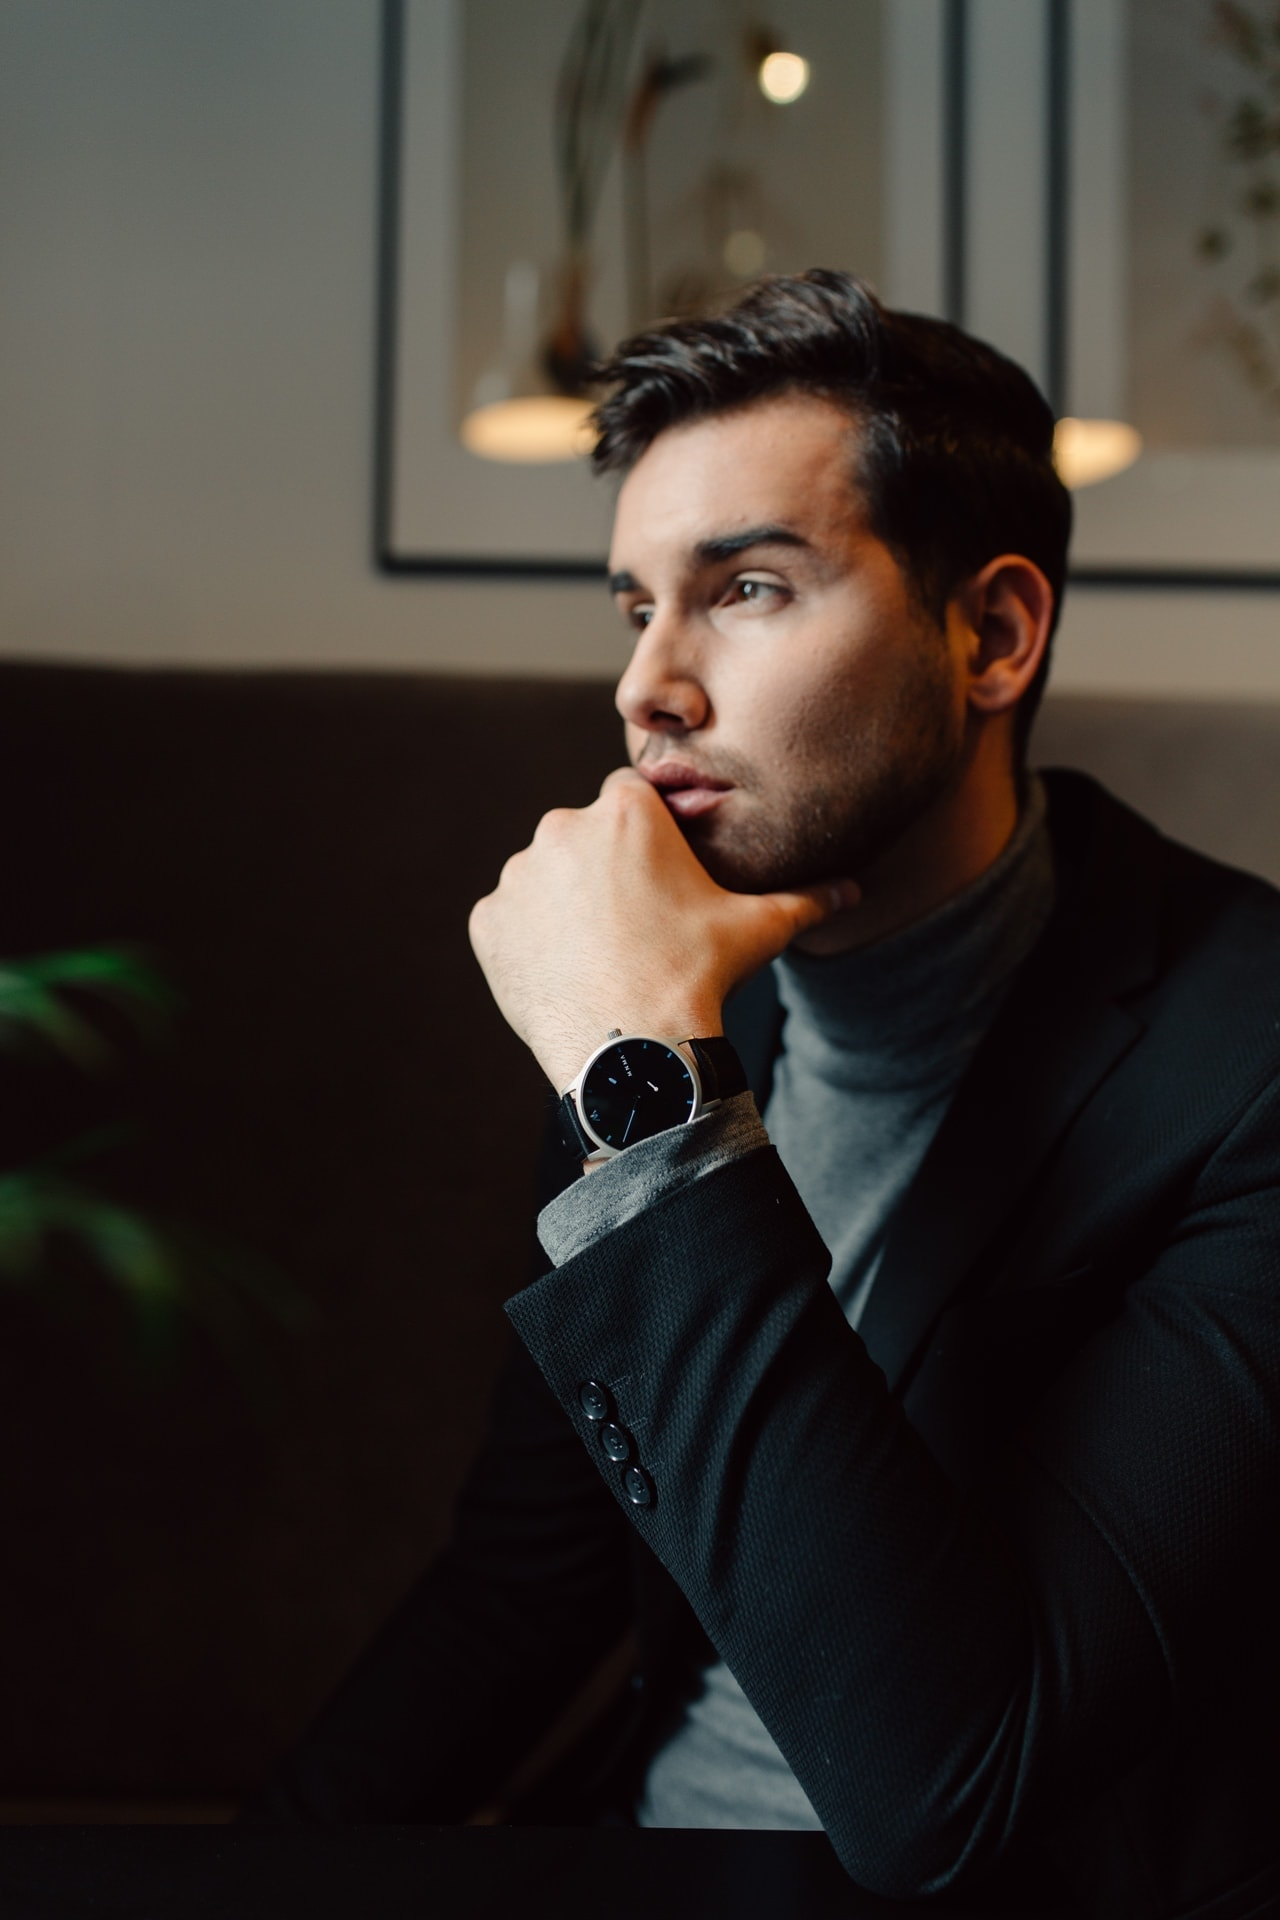 Man who wears a dark men's watch to the elegant Outfti